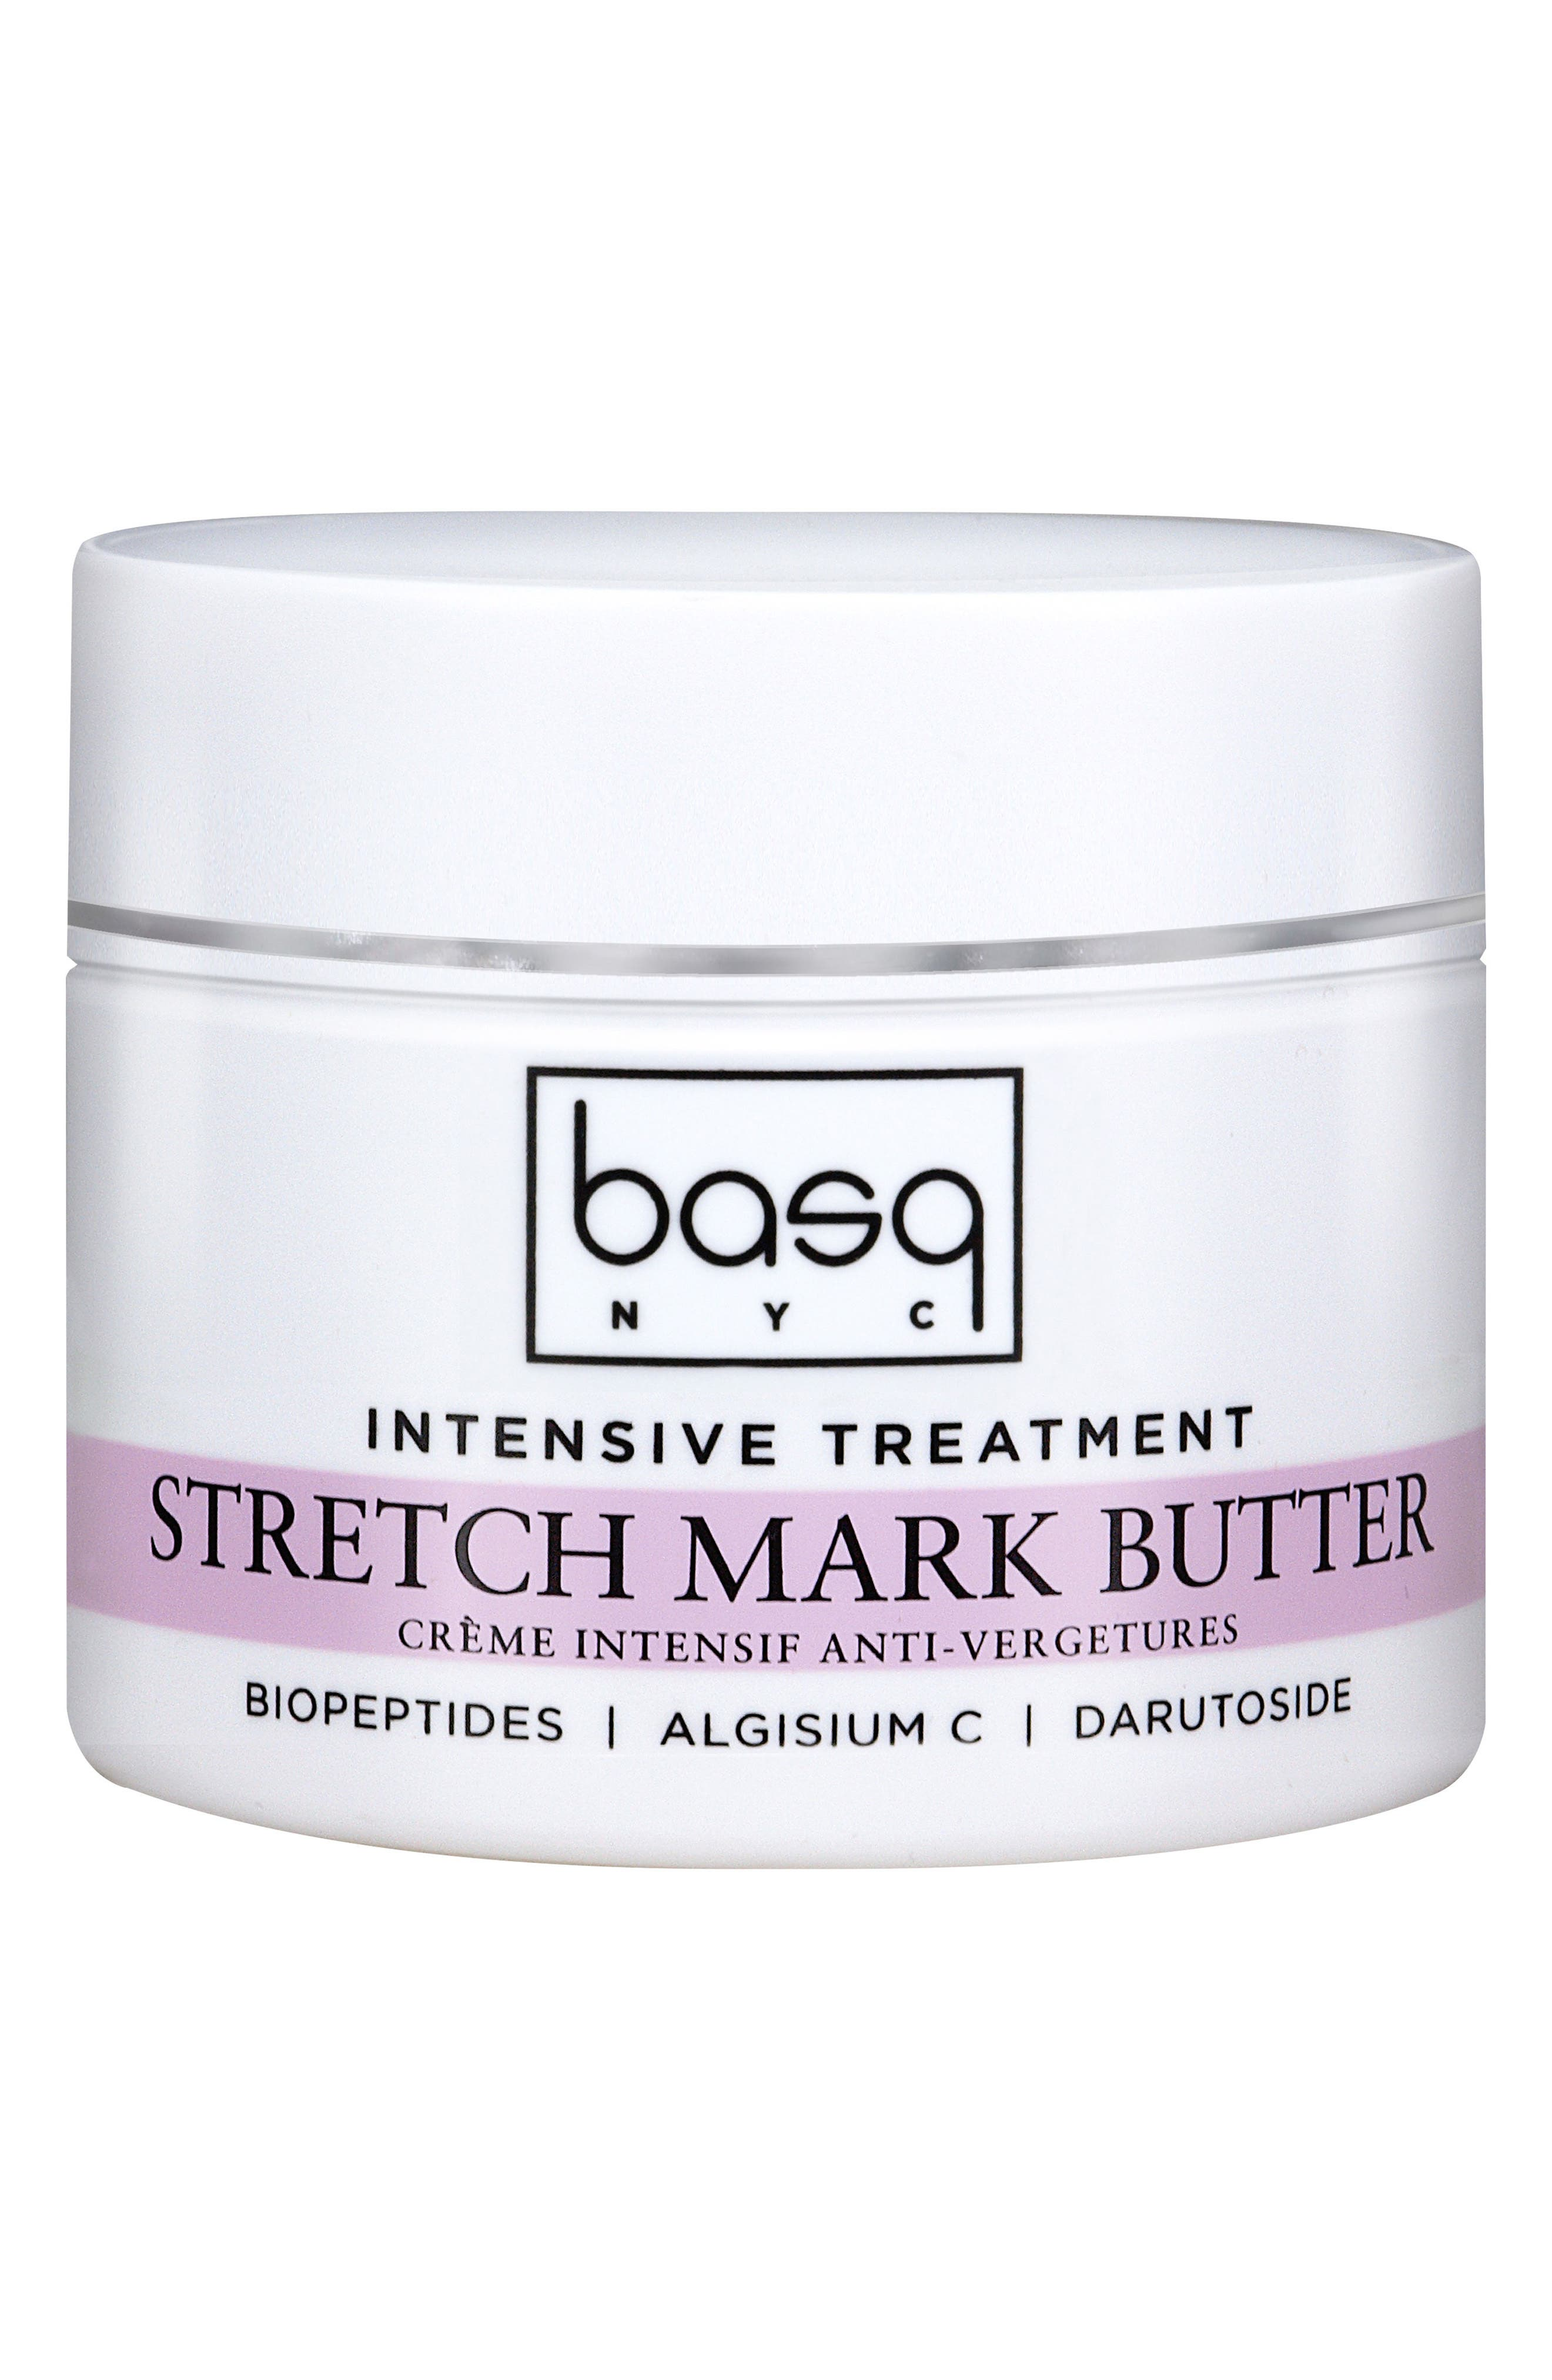 Intensive Treatment Stretch Mark Butter,                             Main thumbnail 1, color,                             White